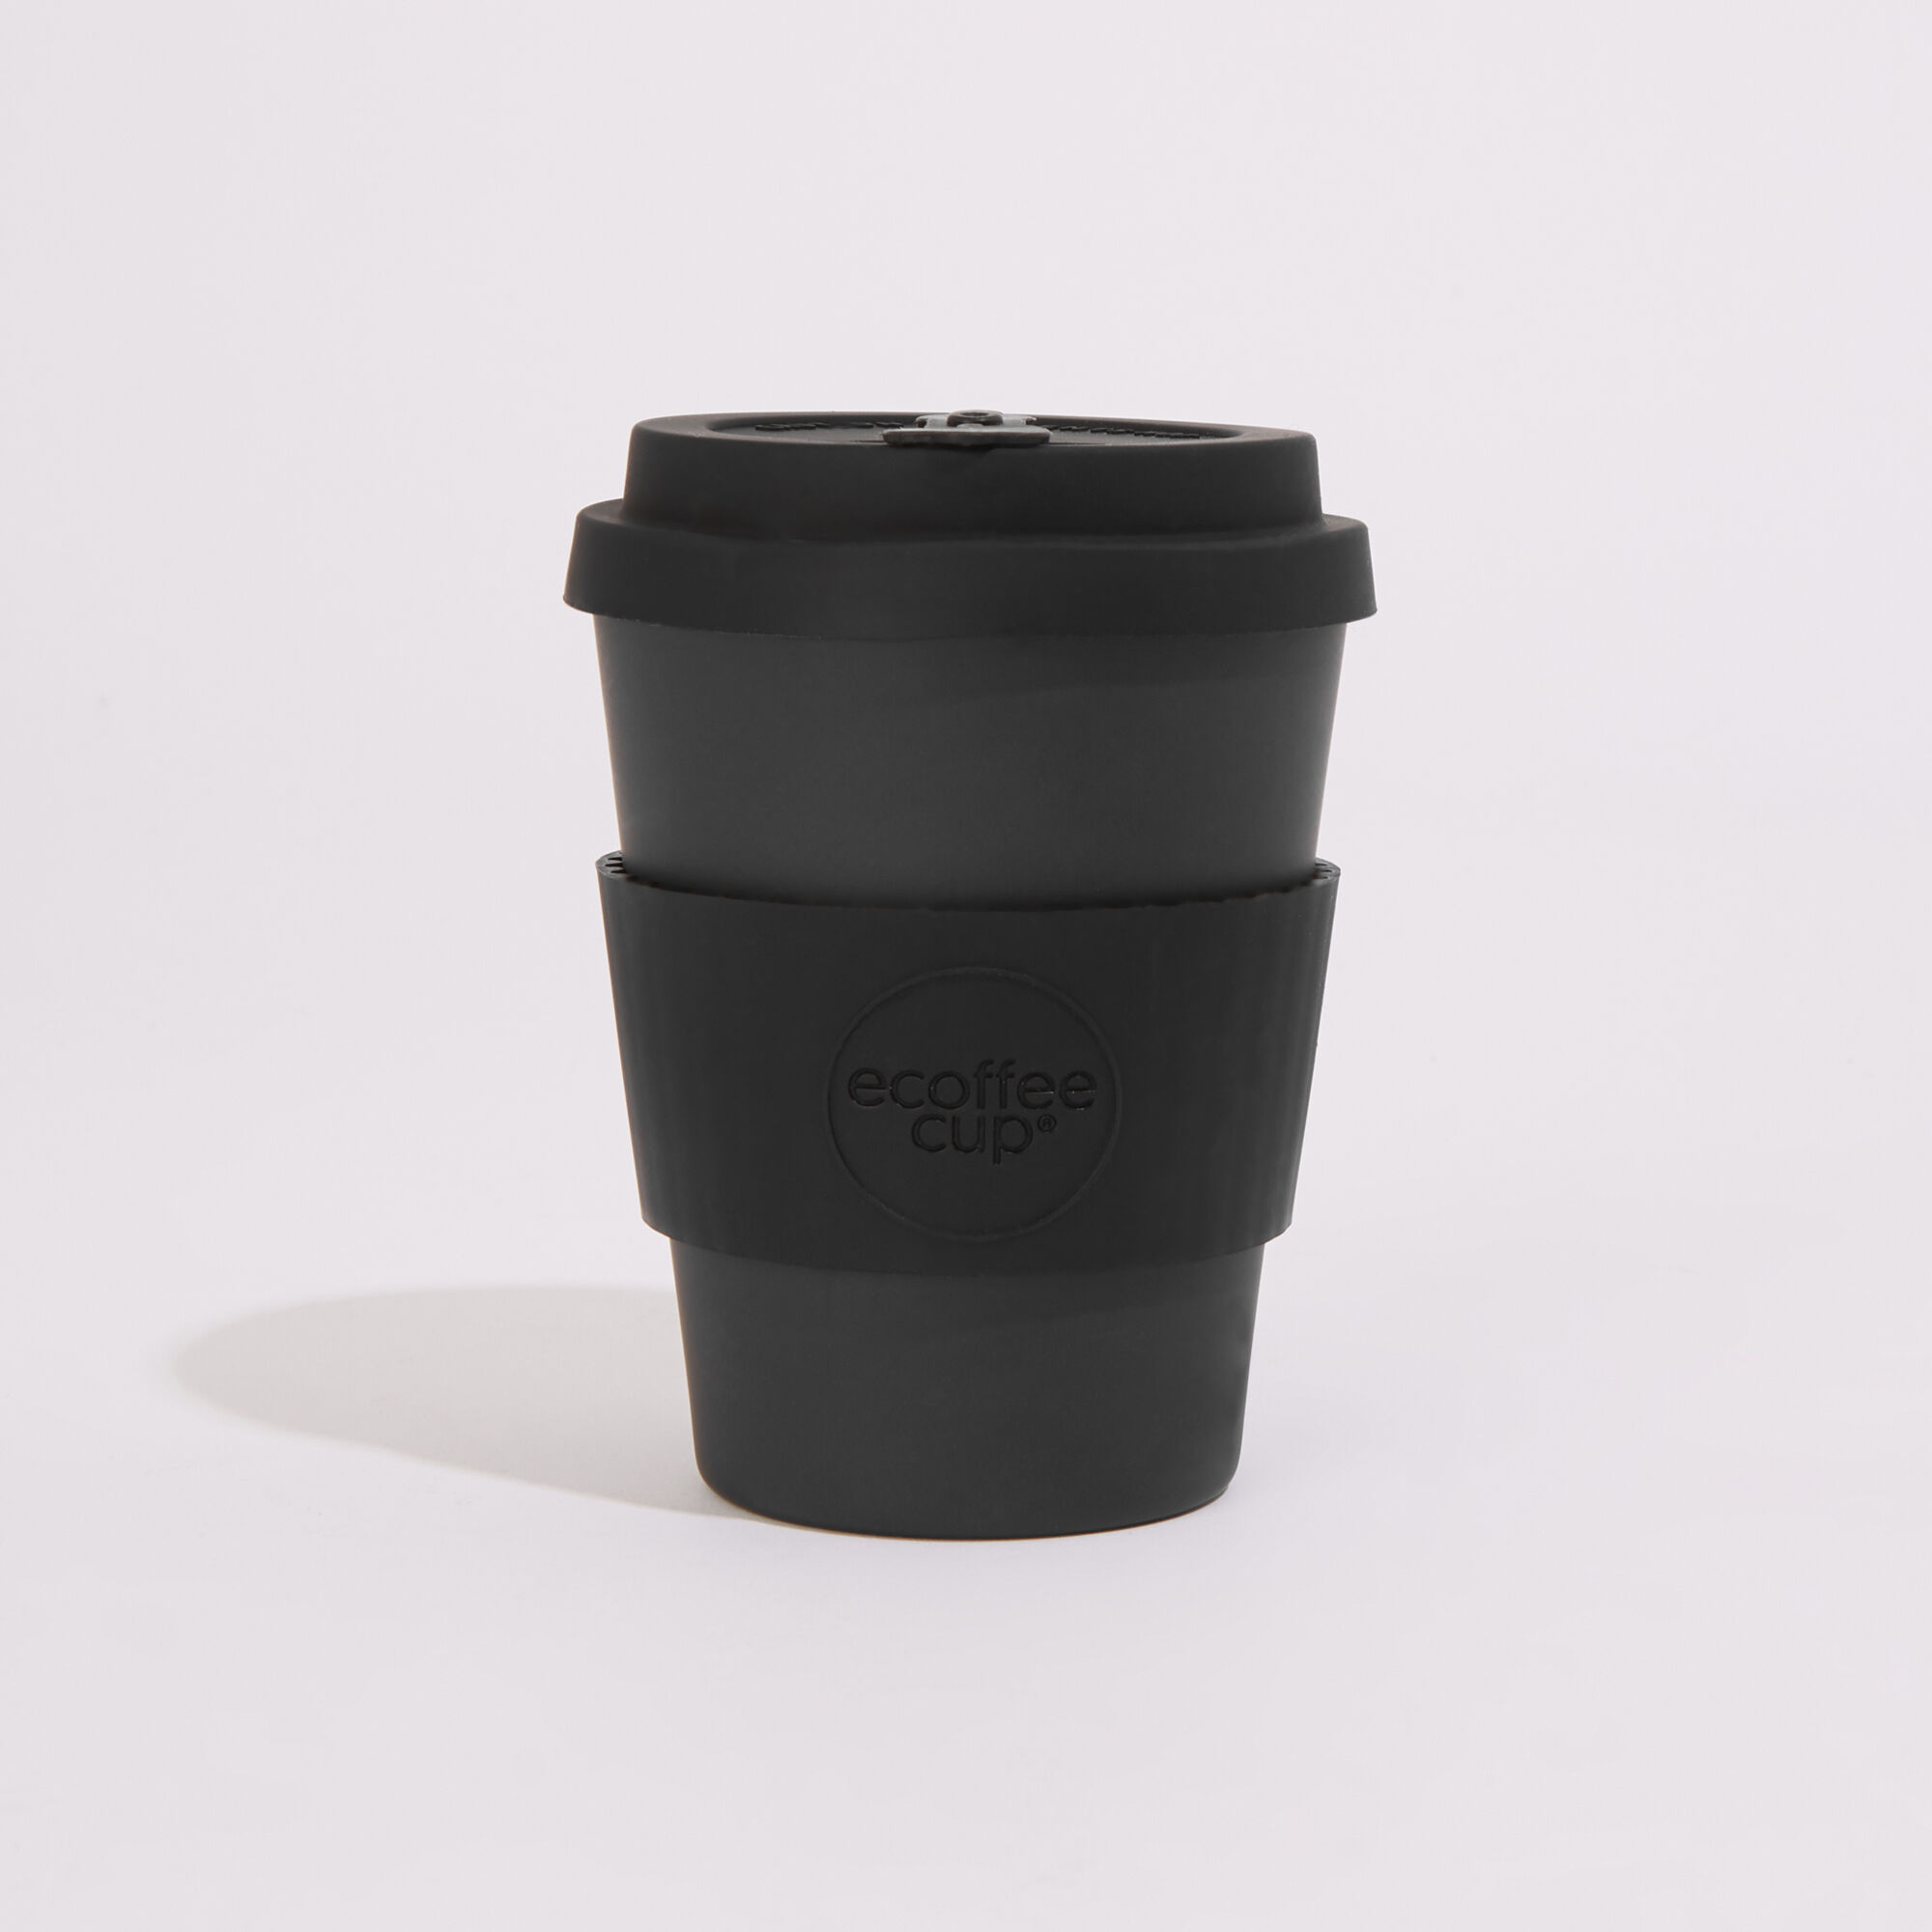 Warehouse, Ecoffee Reusable Coffee Cup Black 1